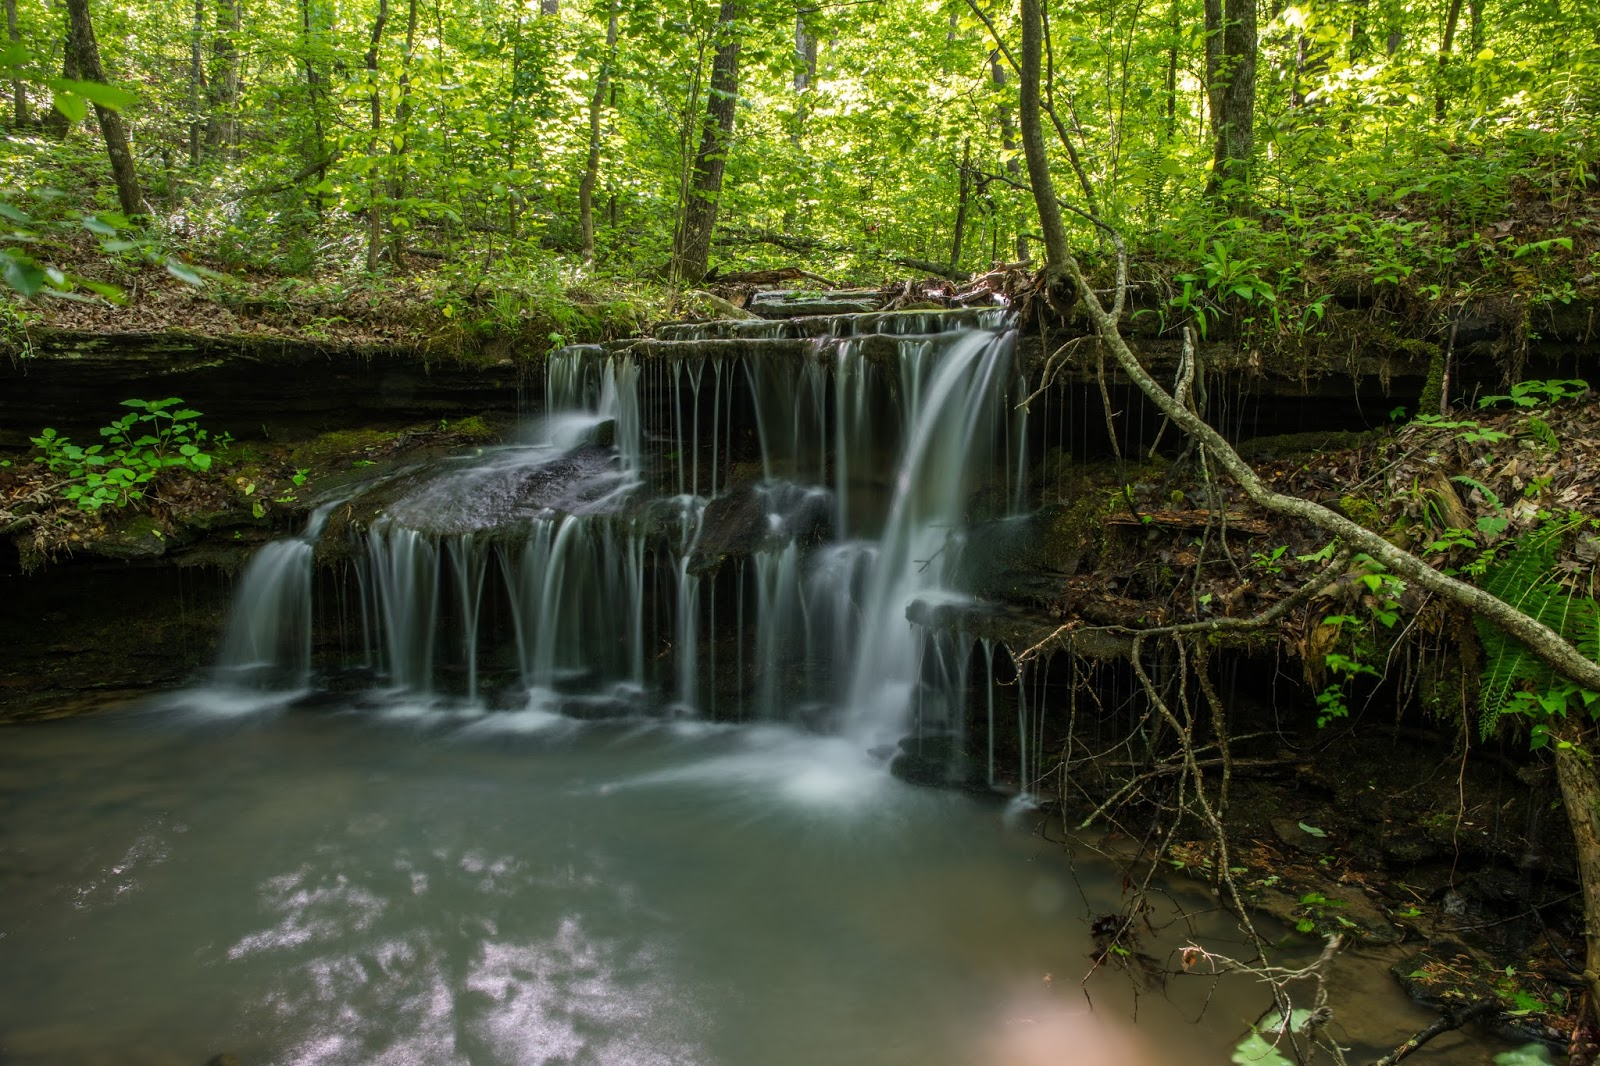 falls creek middle eastern singles Falls creek falls and cane creek falls is a 22 mile lightly trafficked loop trail located near spencer, tennessee that features a waterfall and is.